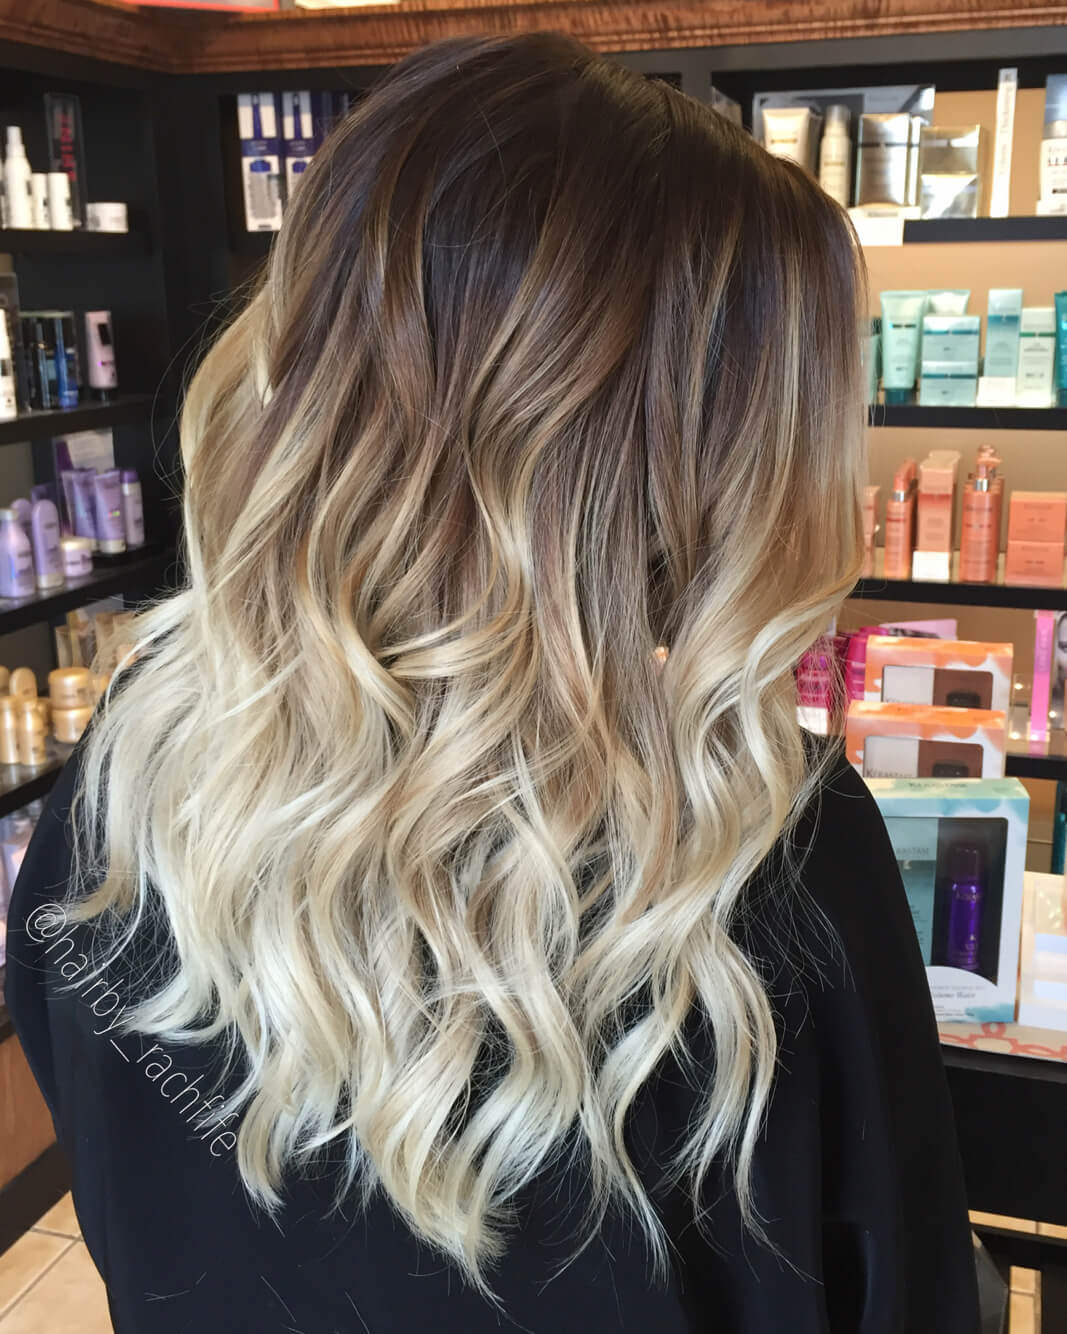 Deep, dark roots plus super-light ends are perfect